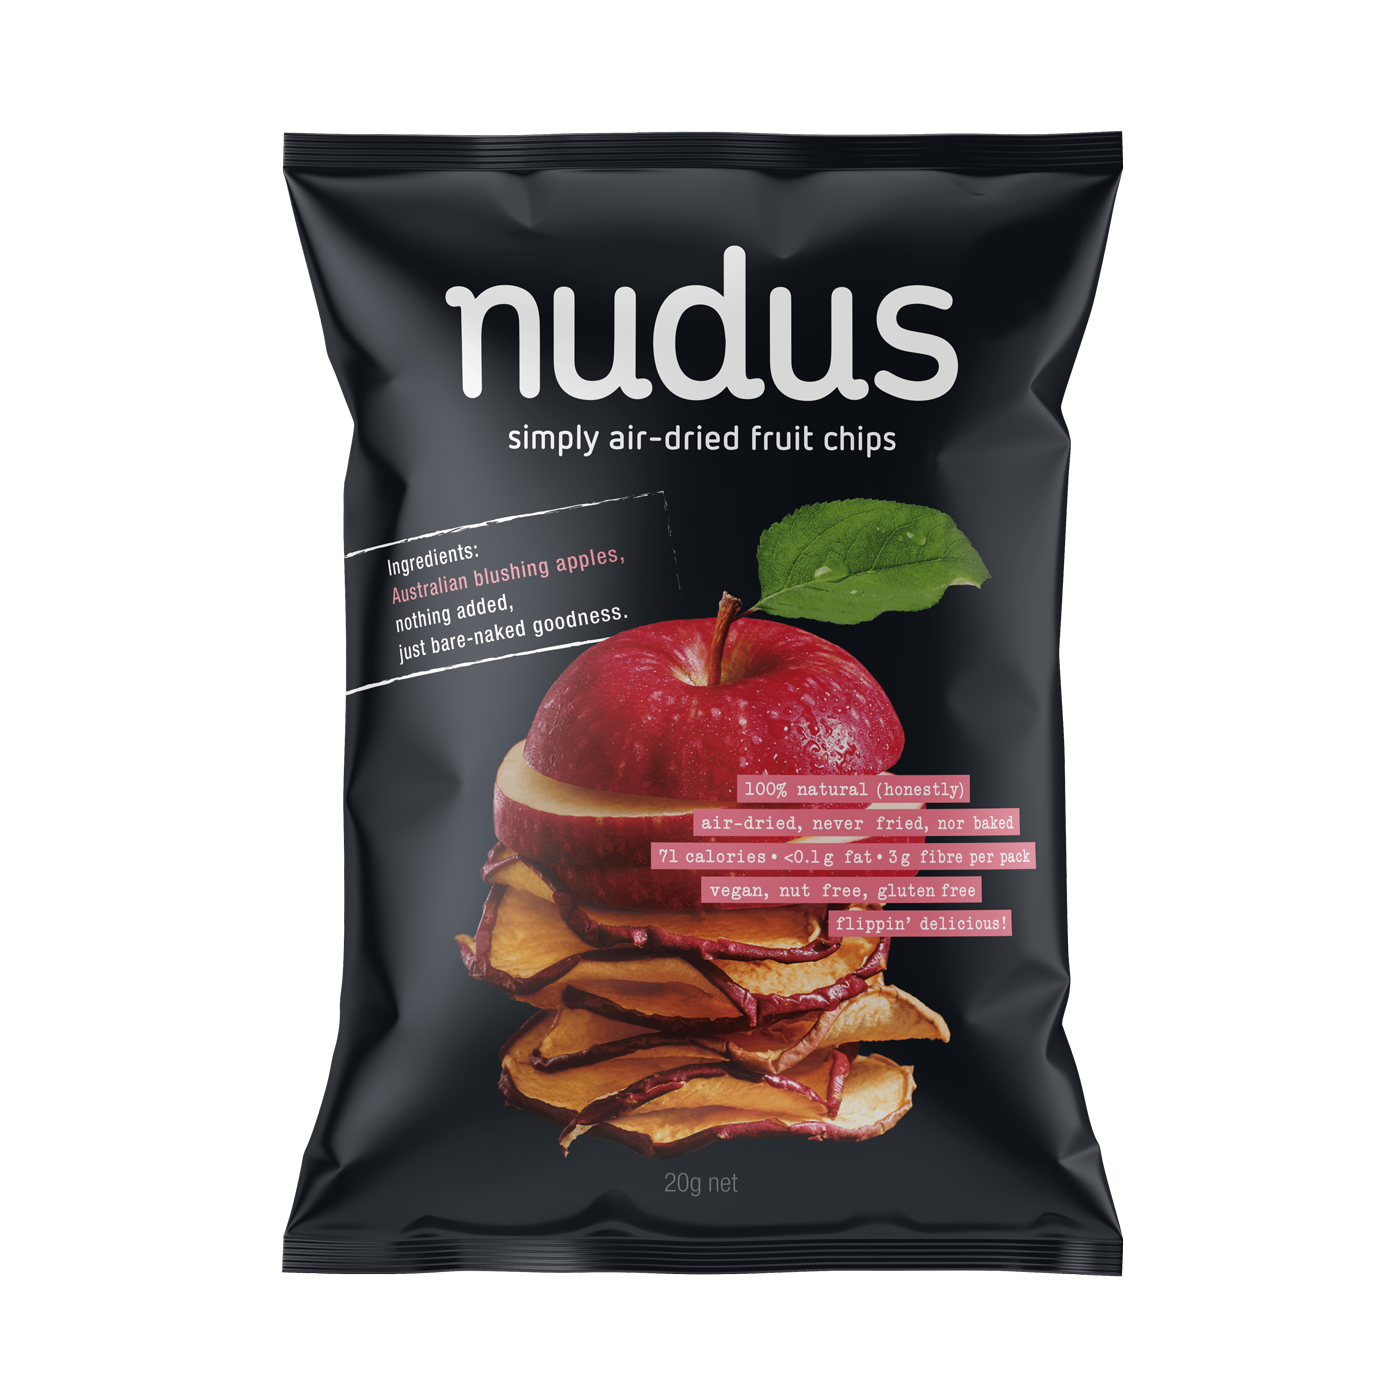 apple fruit chips - 12 bags ($2.75 / 20g bag)